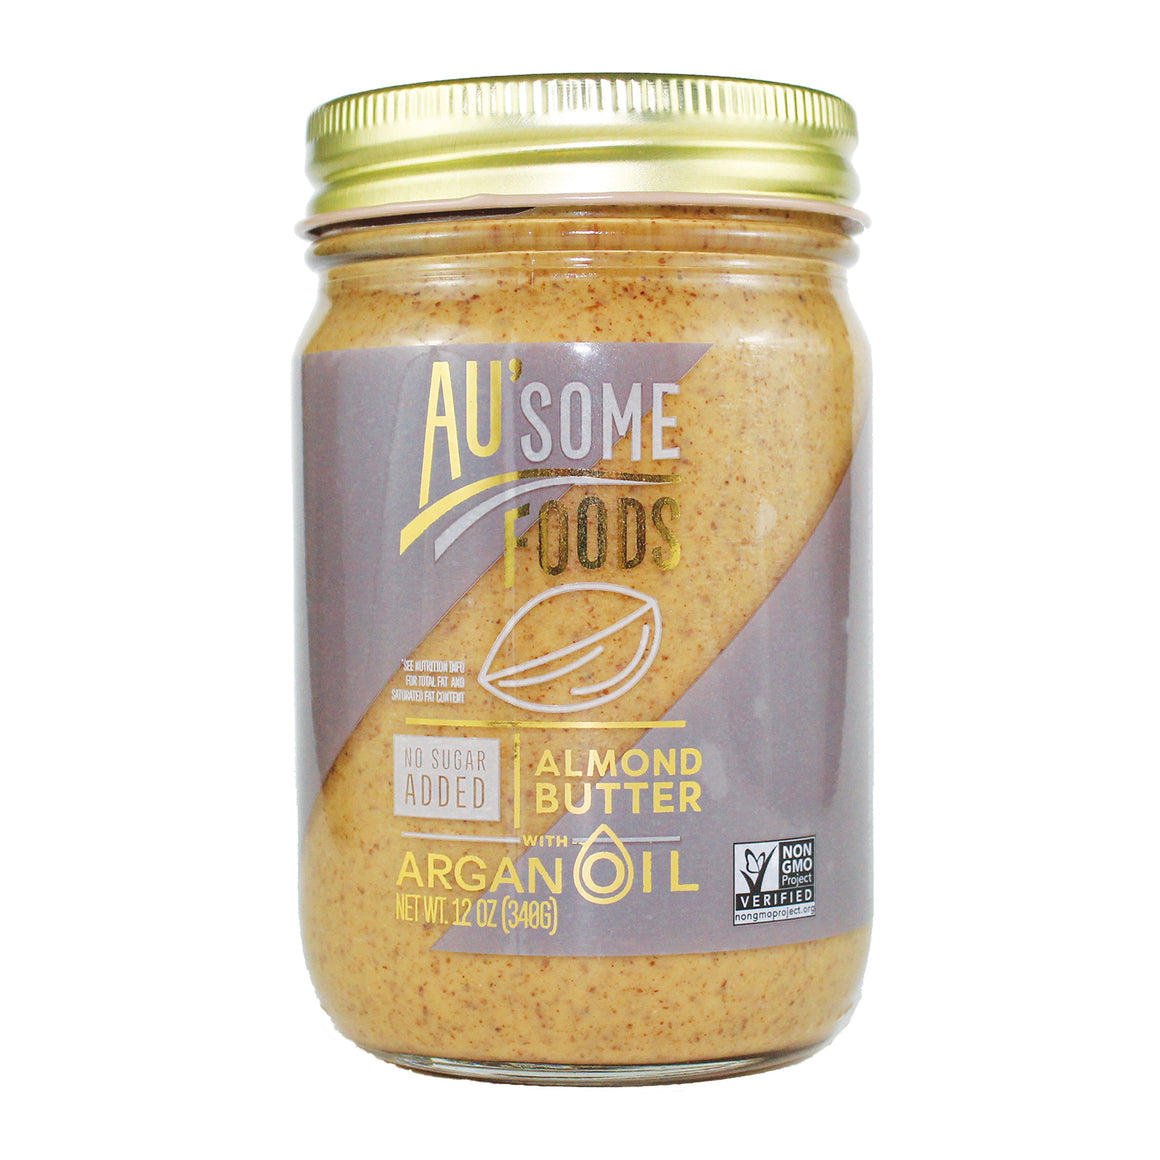 best almond butter. Au'some Foods almond butter with argan oil. no sugar added. Au'some Foods